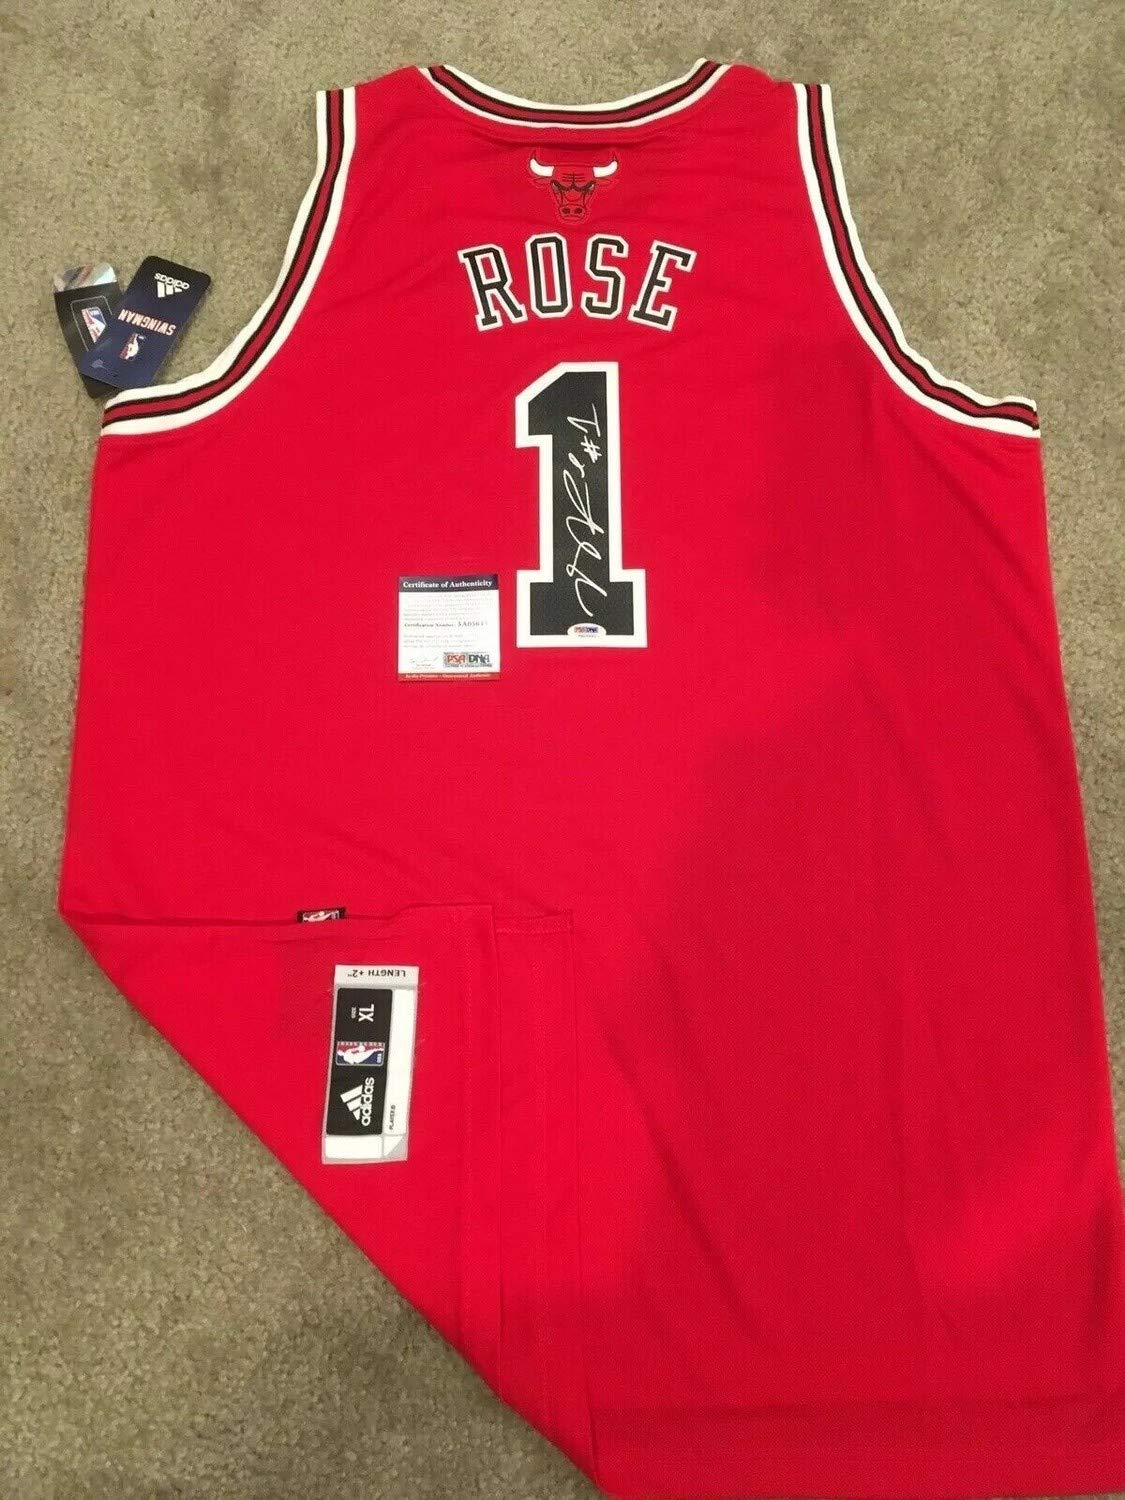 new style 411c2 b1d14 Derrick Rose Autographed Signed Memorabilia Official Chicago ...